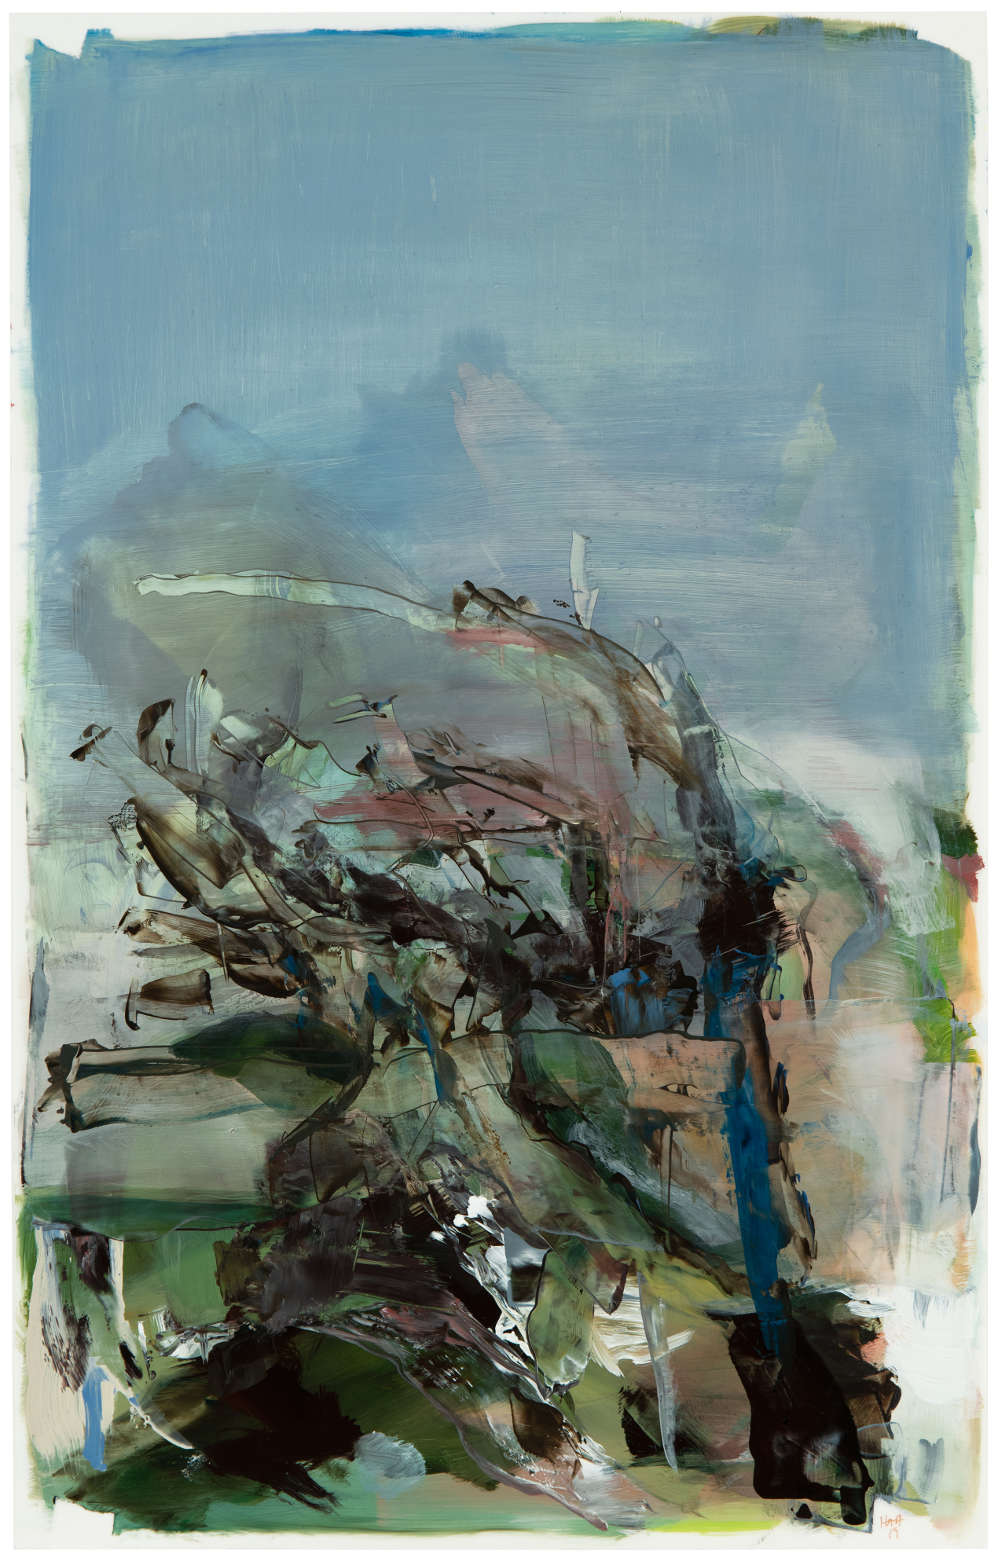 Hollis Heichemer (b. 1963), #13, 2019. Initialed and dated lower right: HAH / 19. Oil on Mylar 19 x 12 inches